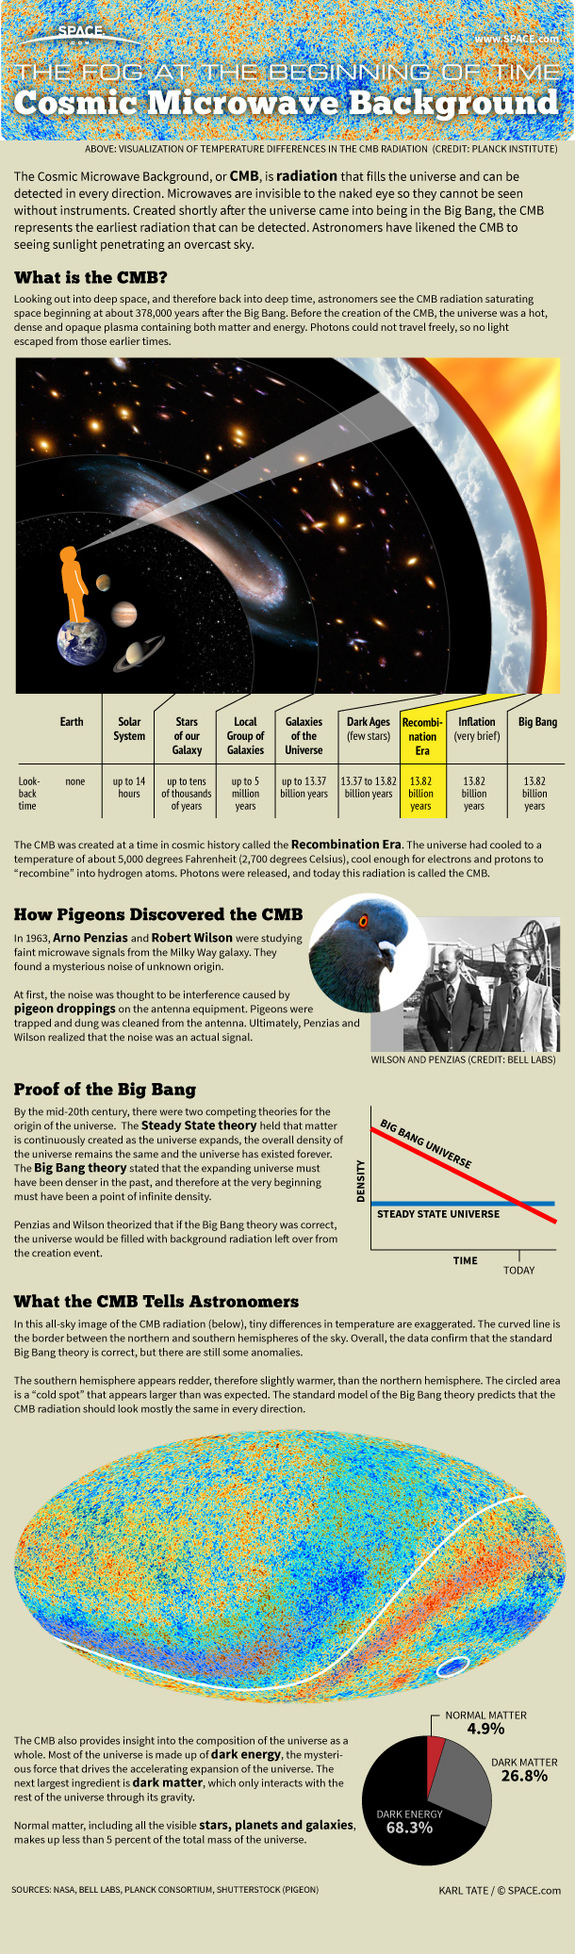 Find out how cosmic microwave background radiation reveals the secrets of the universe in this SPACE.com Infographic.